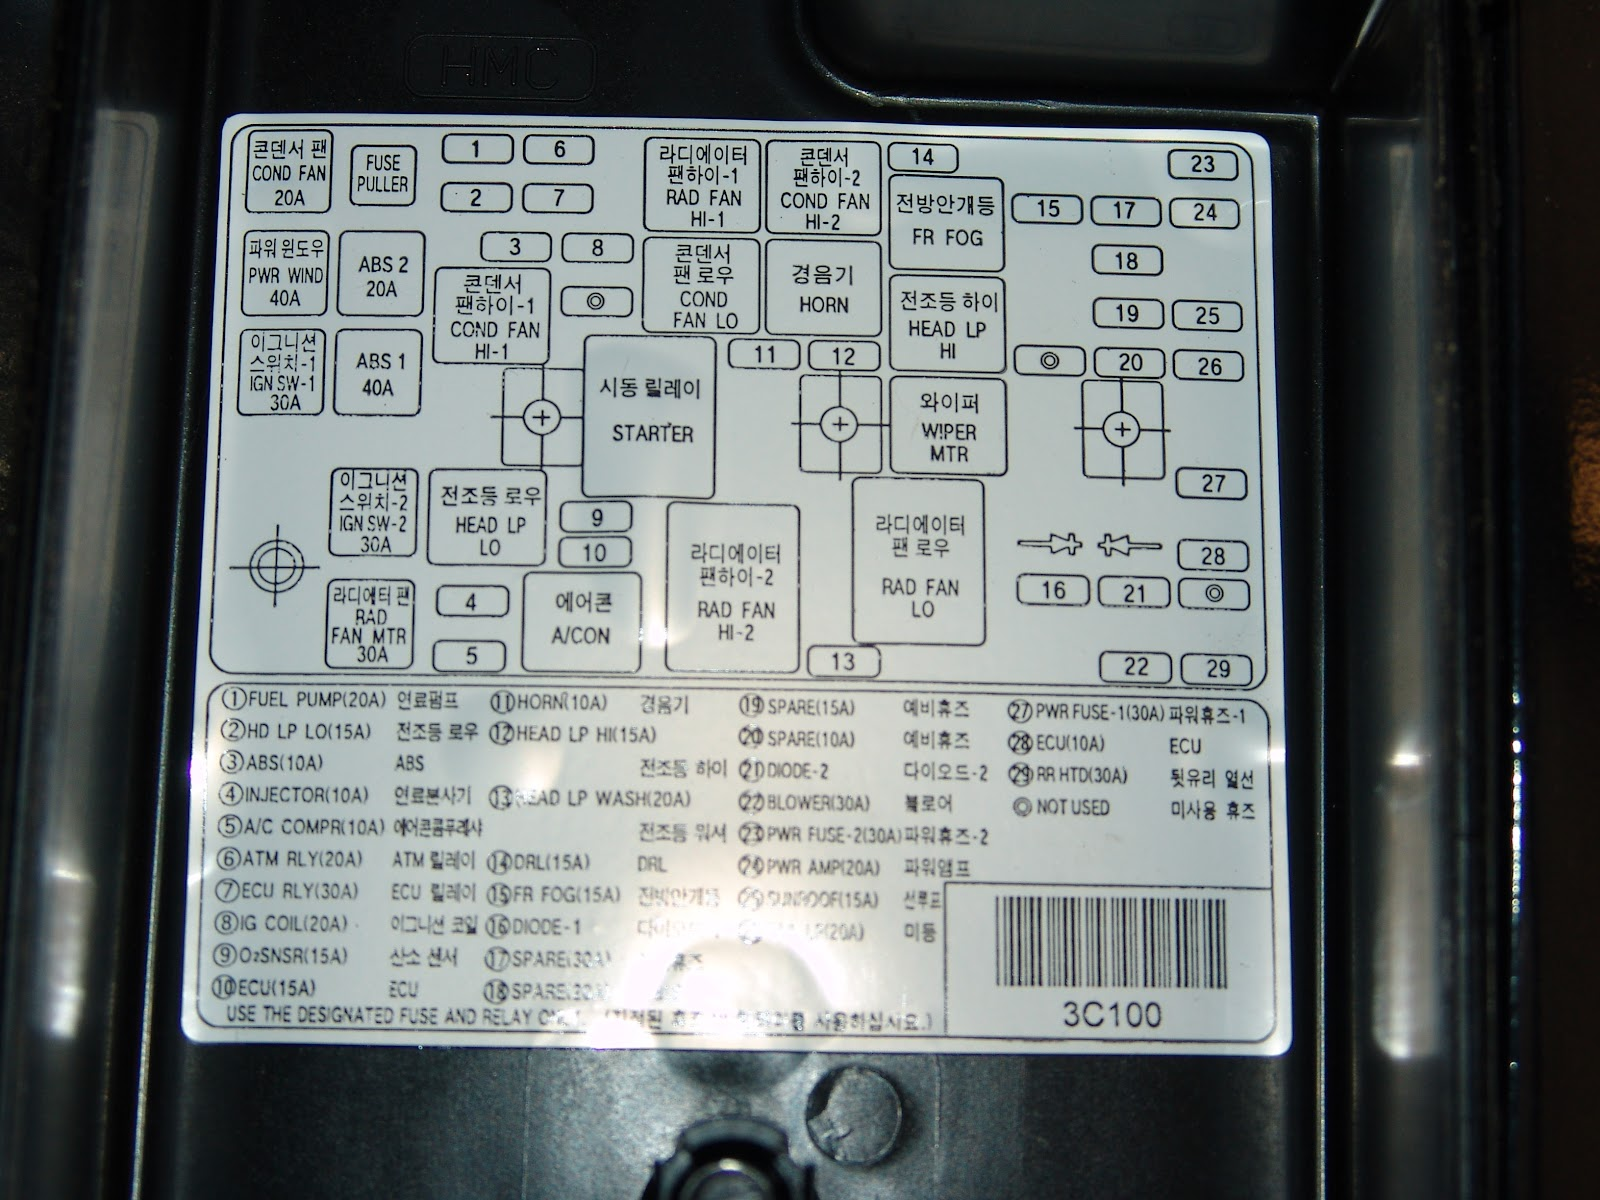 Diagram Of An Ipod Back together with 123599 2007 Acura TL Navigation Retrofit  redux further Acura Hfl Module additionally Acura 2008 Rdx Owners Manual Pdf Download as well 02 Acura Tl Under Hood Fuse Box. on 2007 acura tl hfl